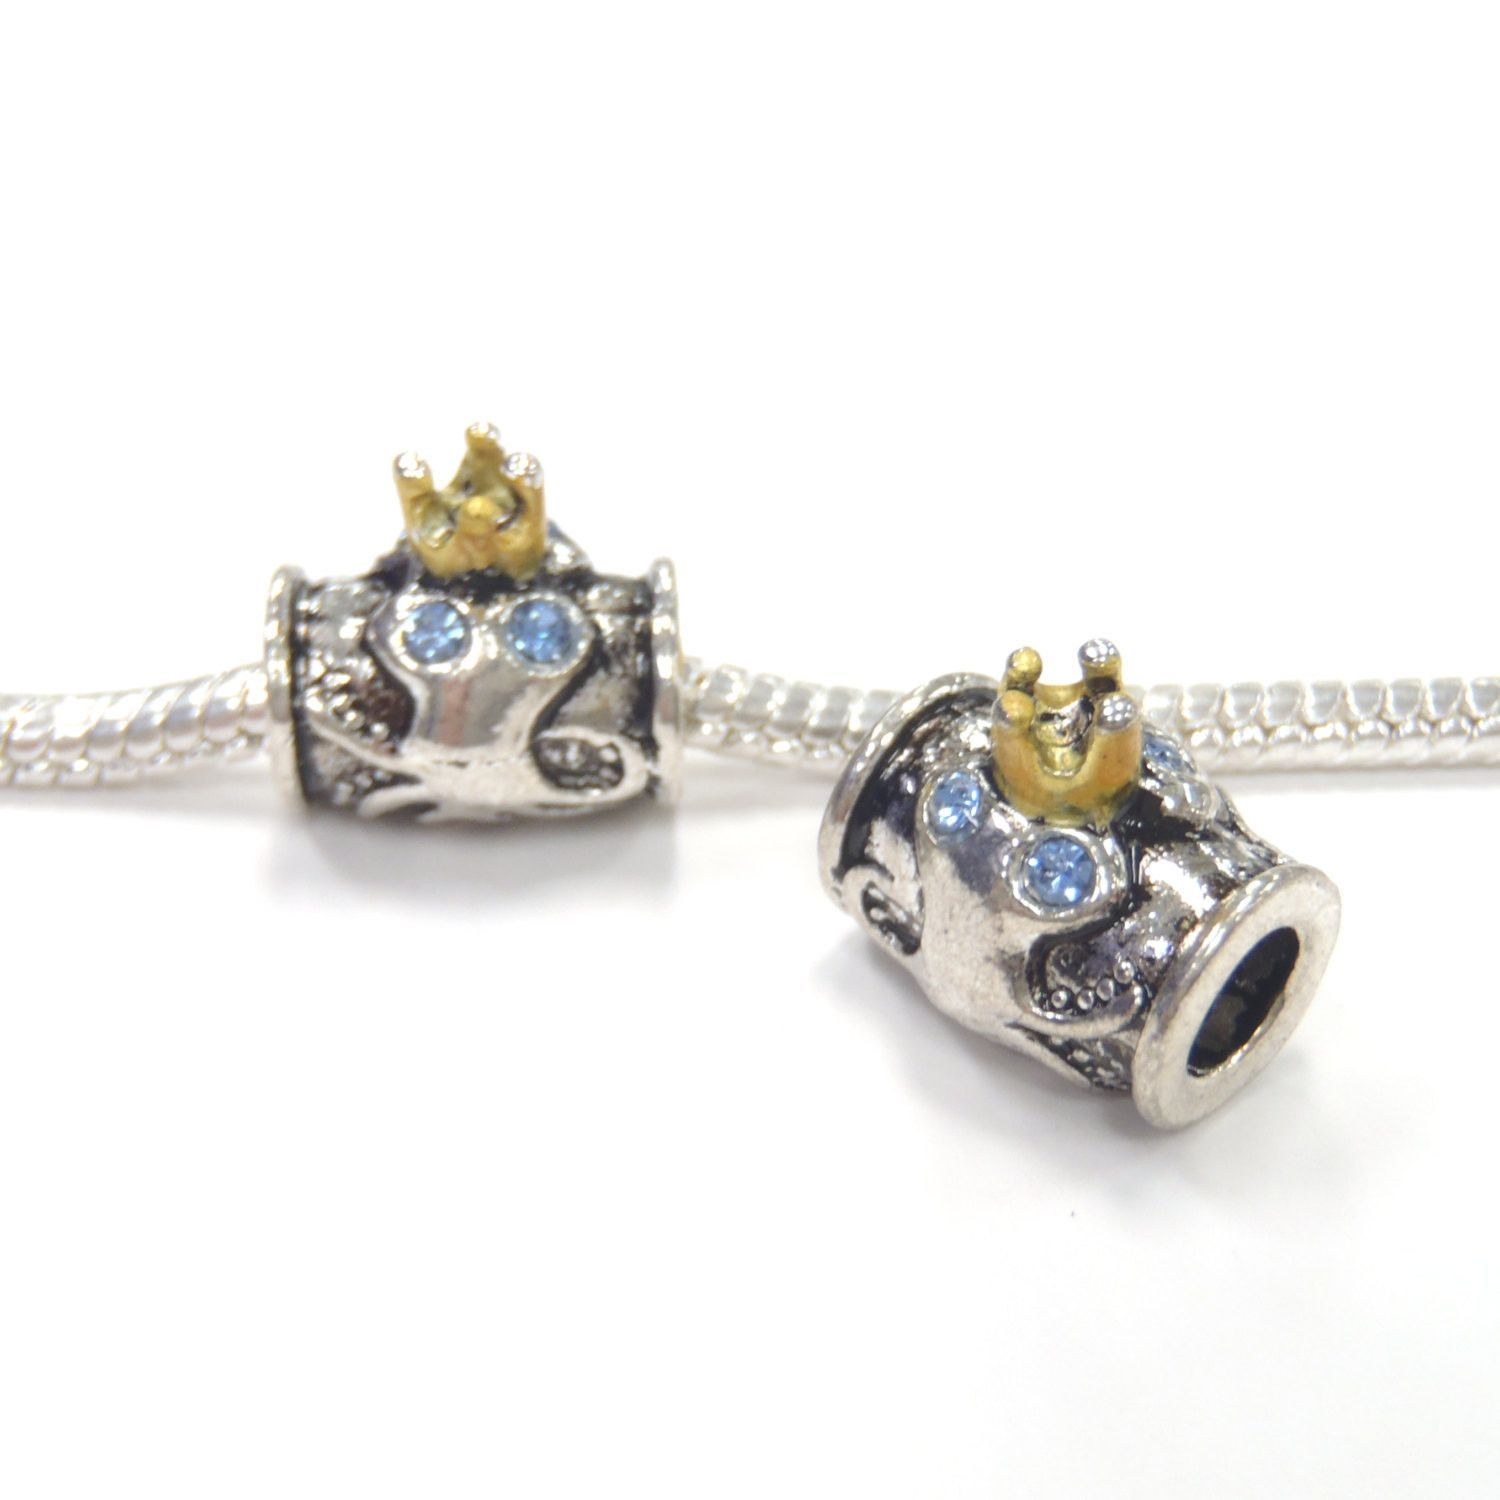 1 pc Blue Rhinestone Octopus Gold Silver Tone European Style Beads Spacer Charms for Bracelet Necklace Lot E1181